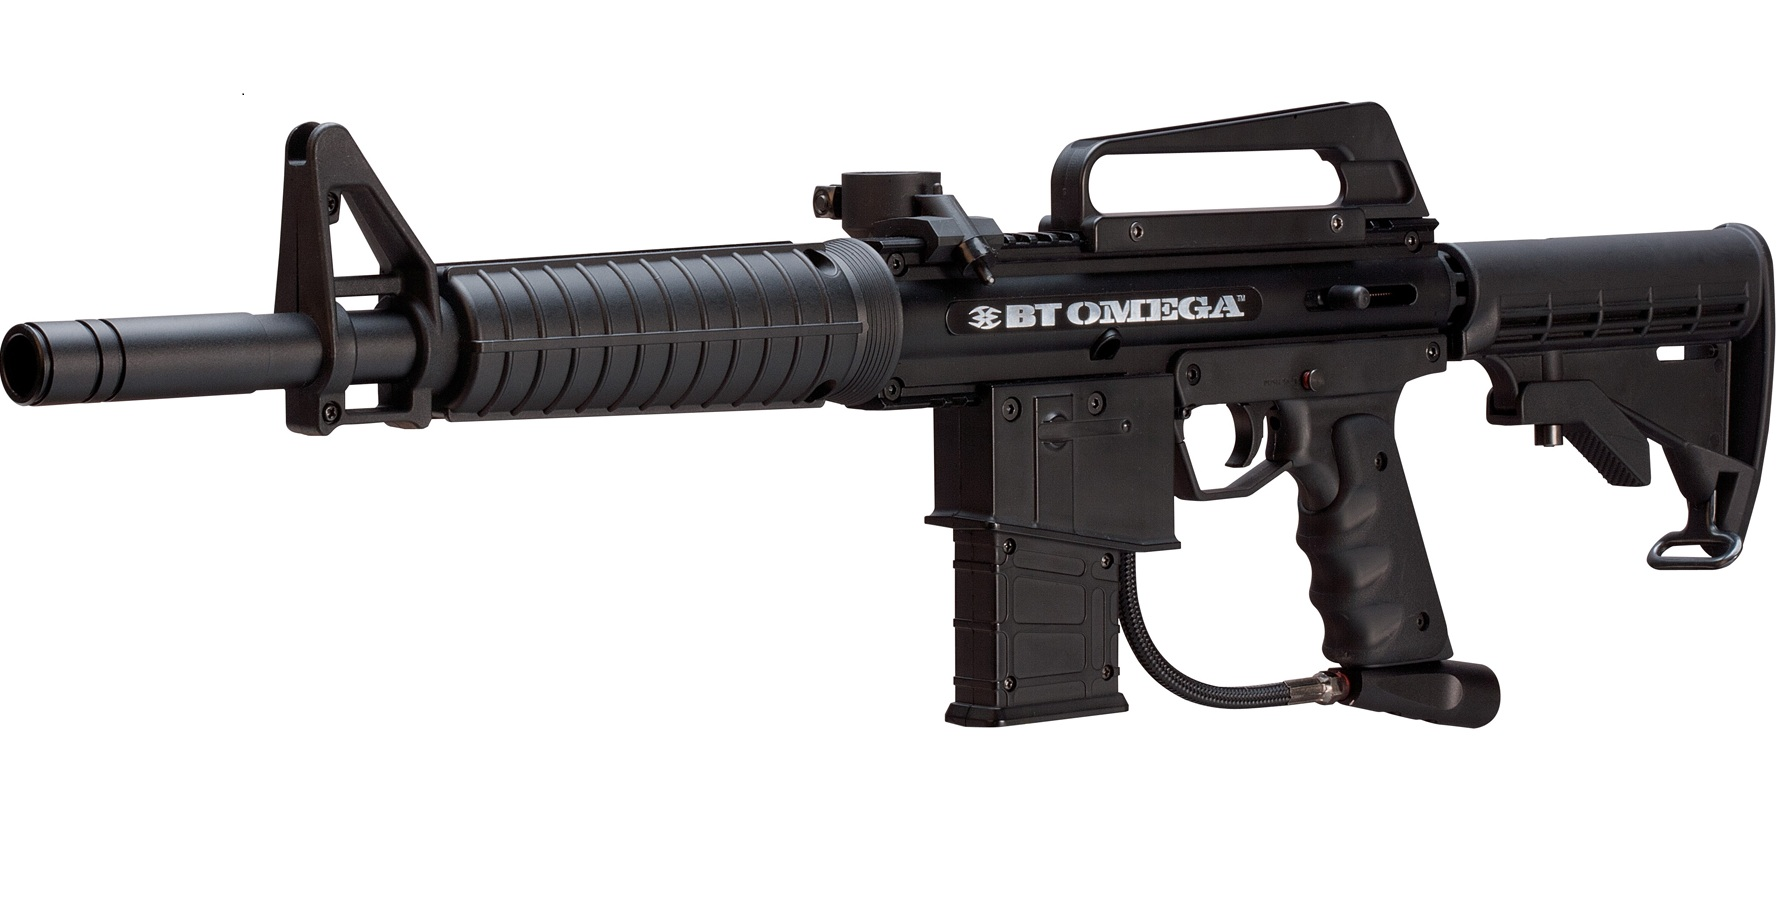 pb_bt_omegablk_17041_empire_bt_omega_paintball_gun_black_1.jpg